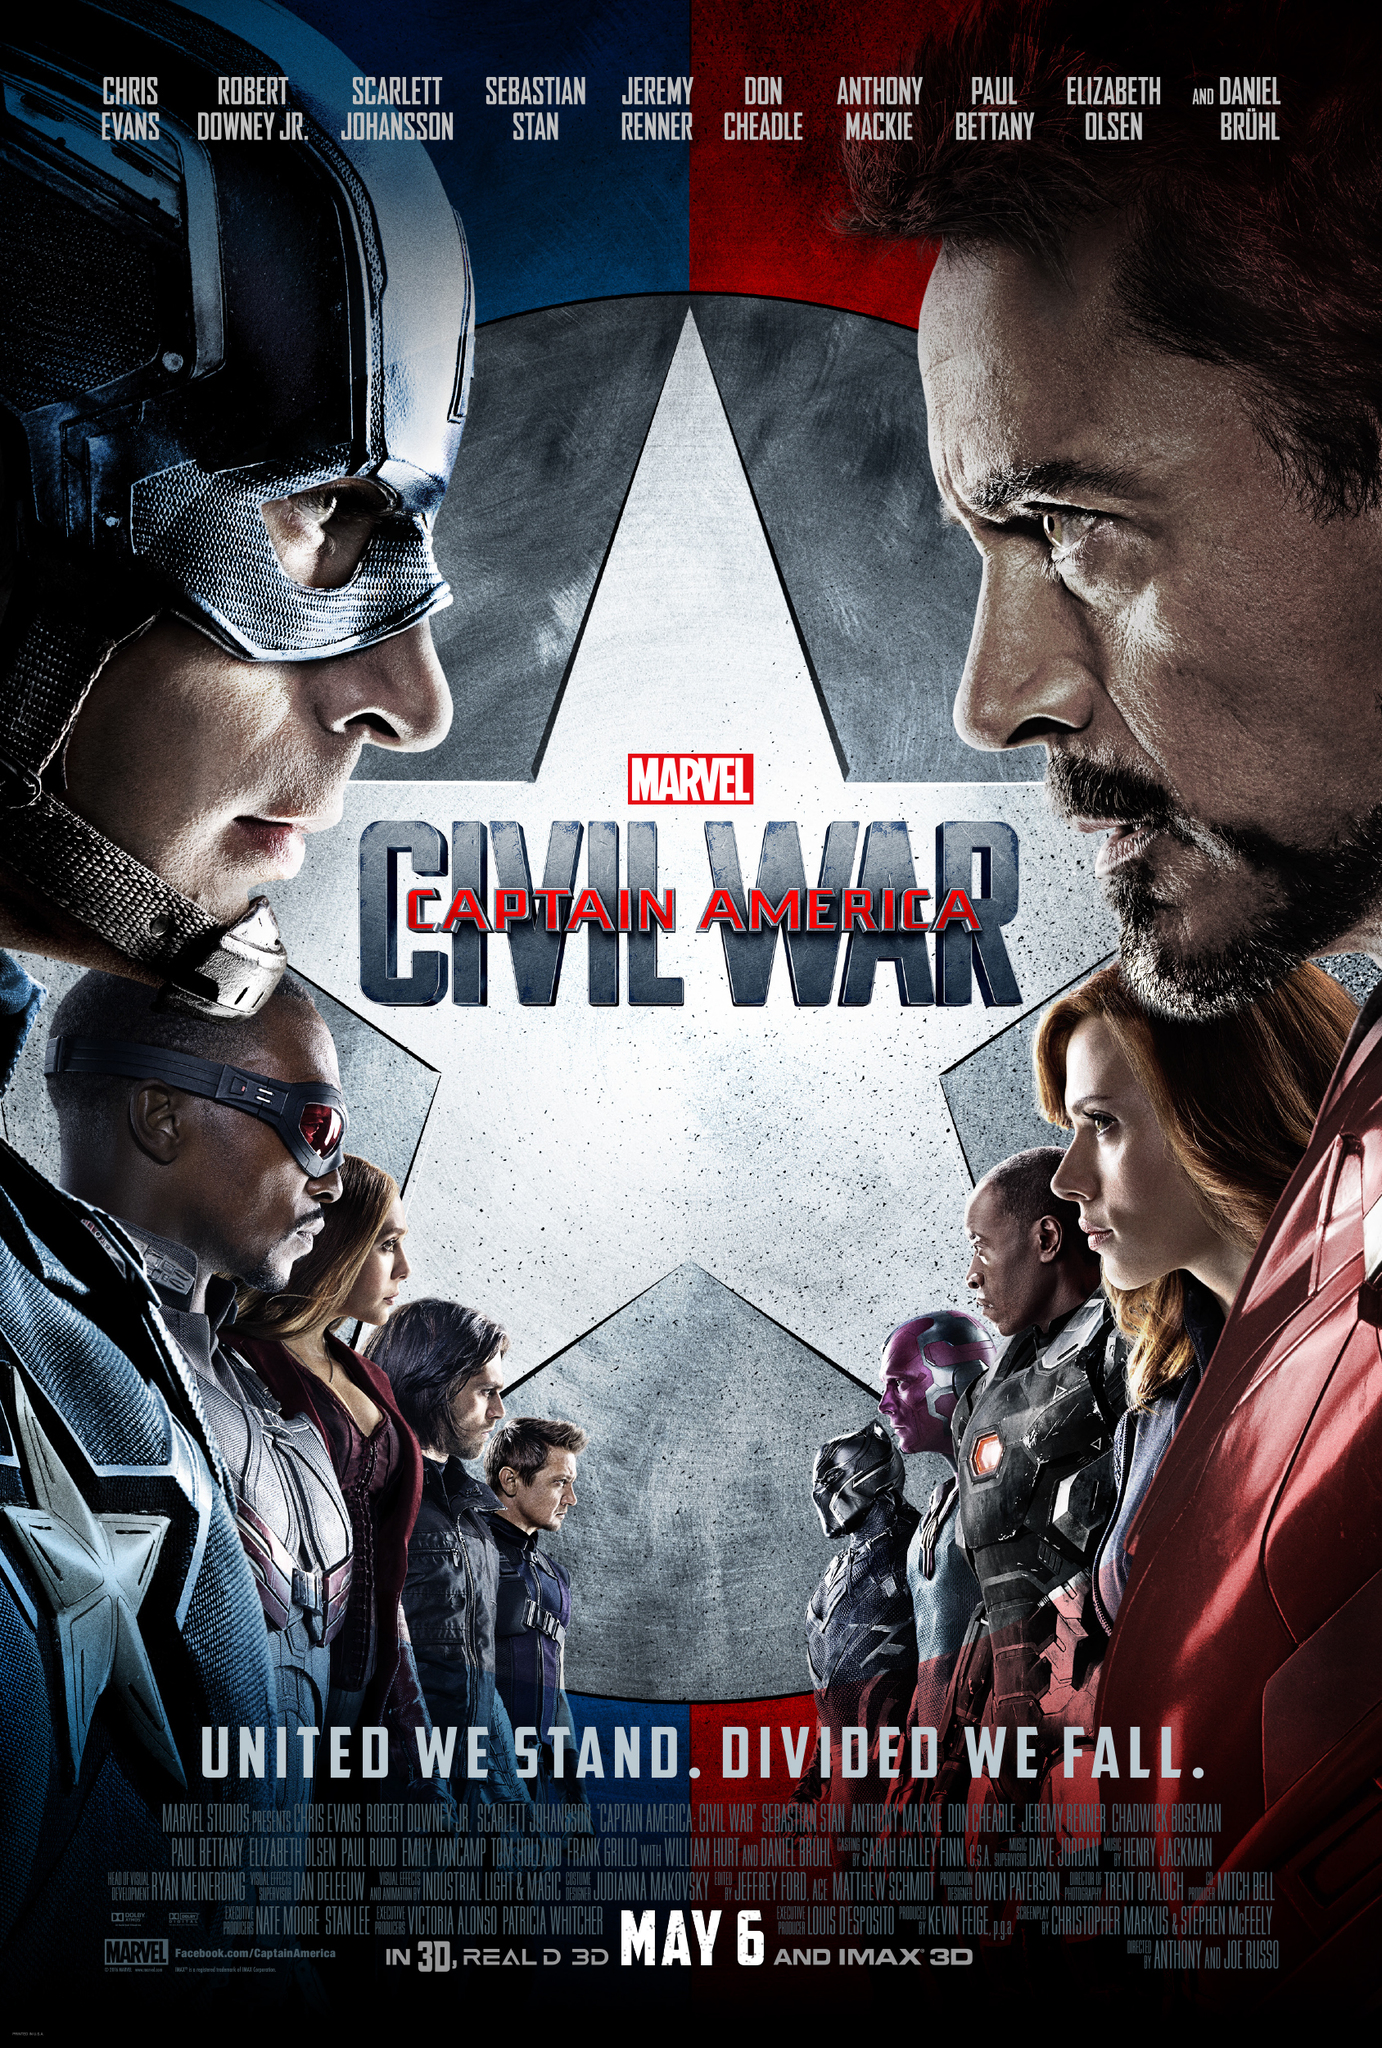 captain america civil war full movie free download in tamil